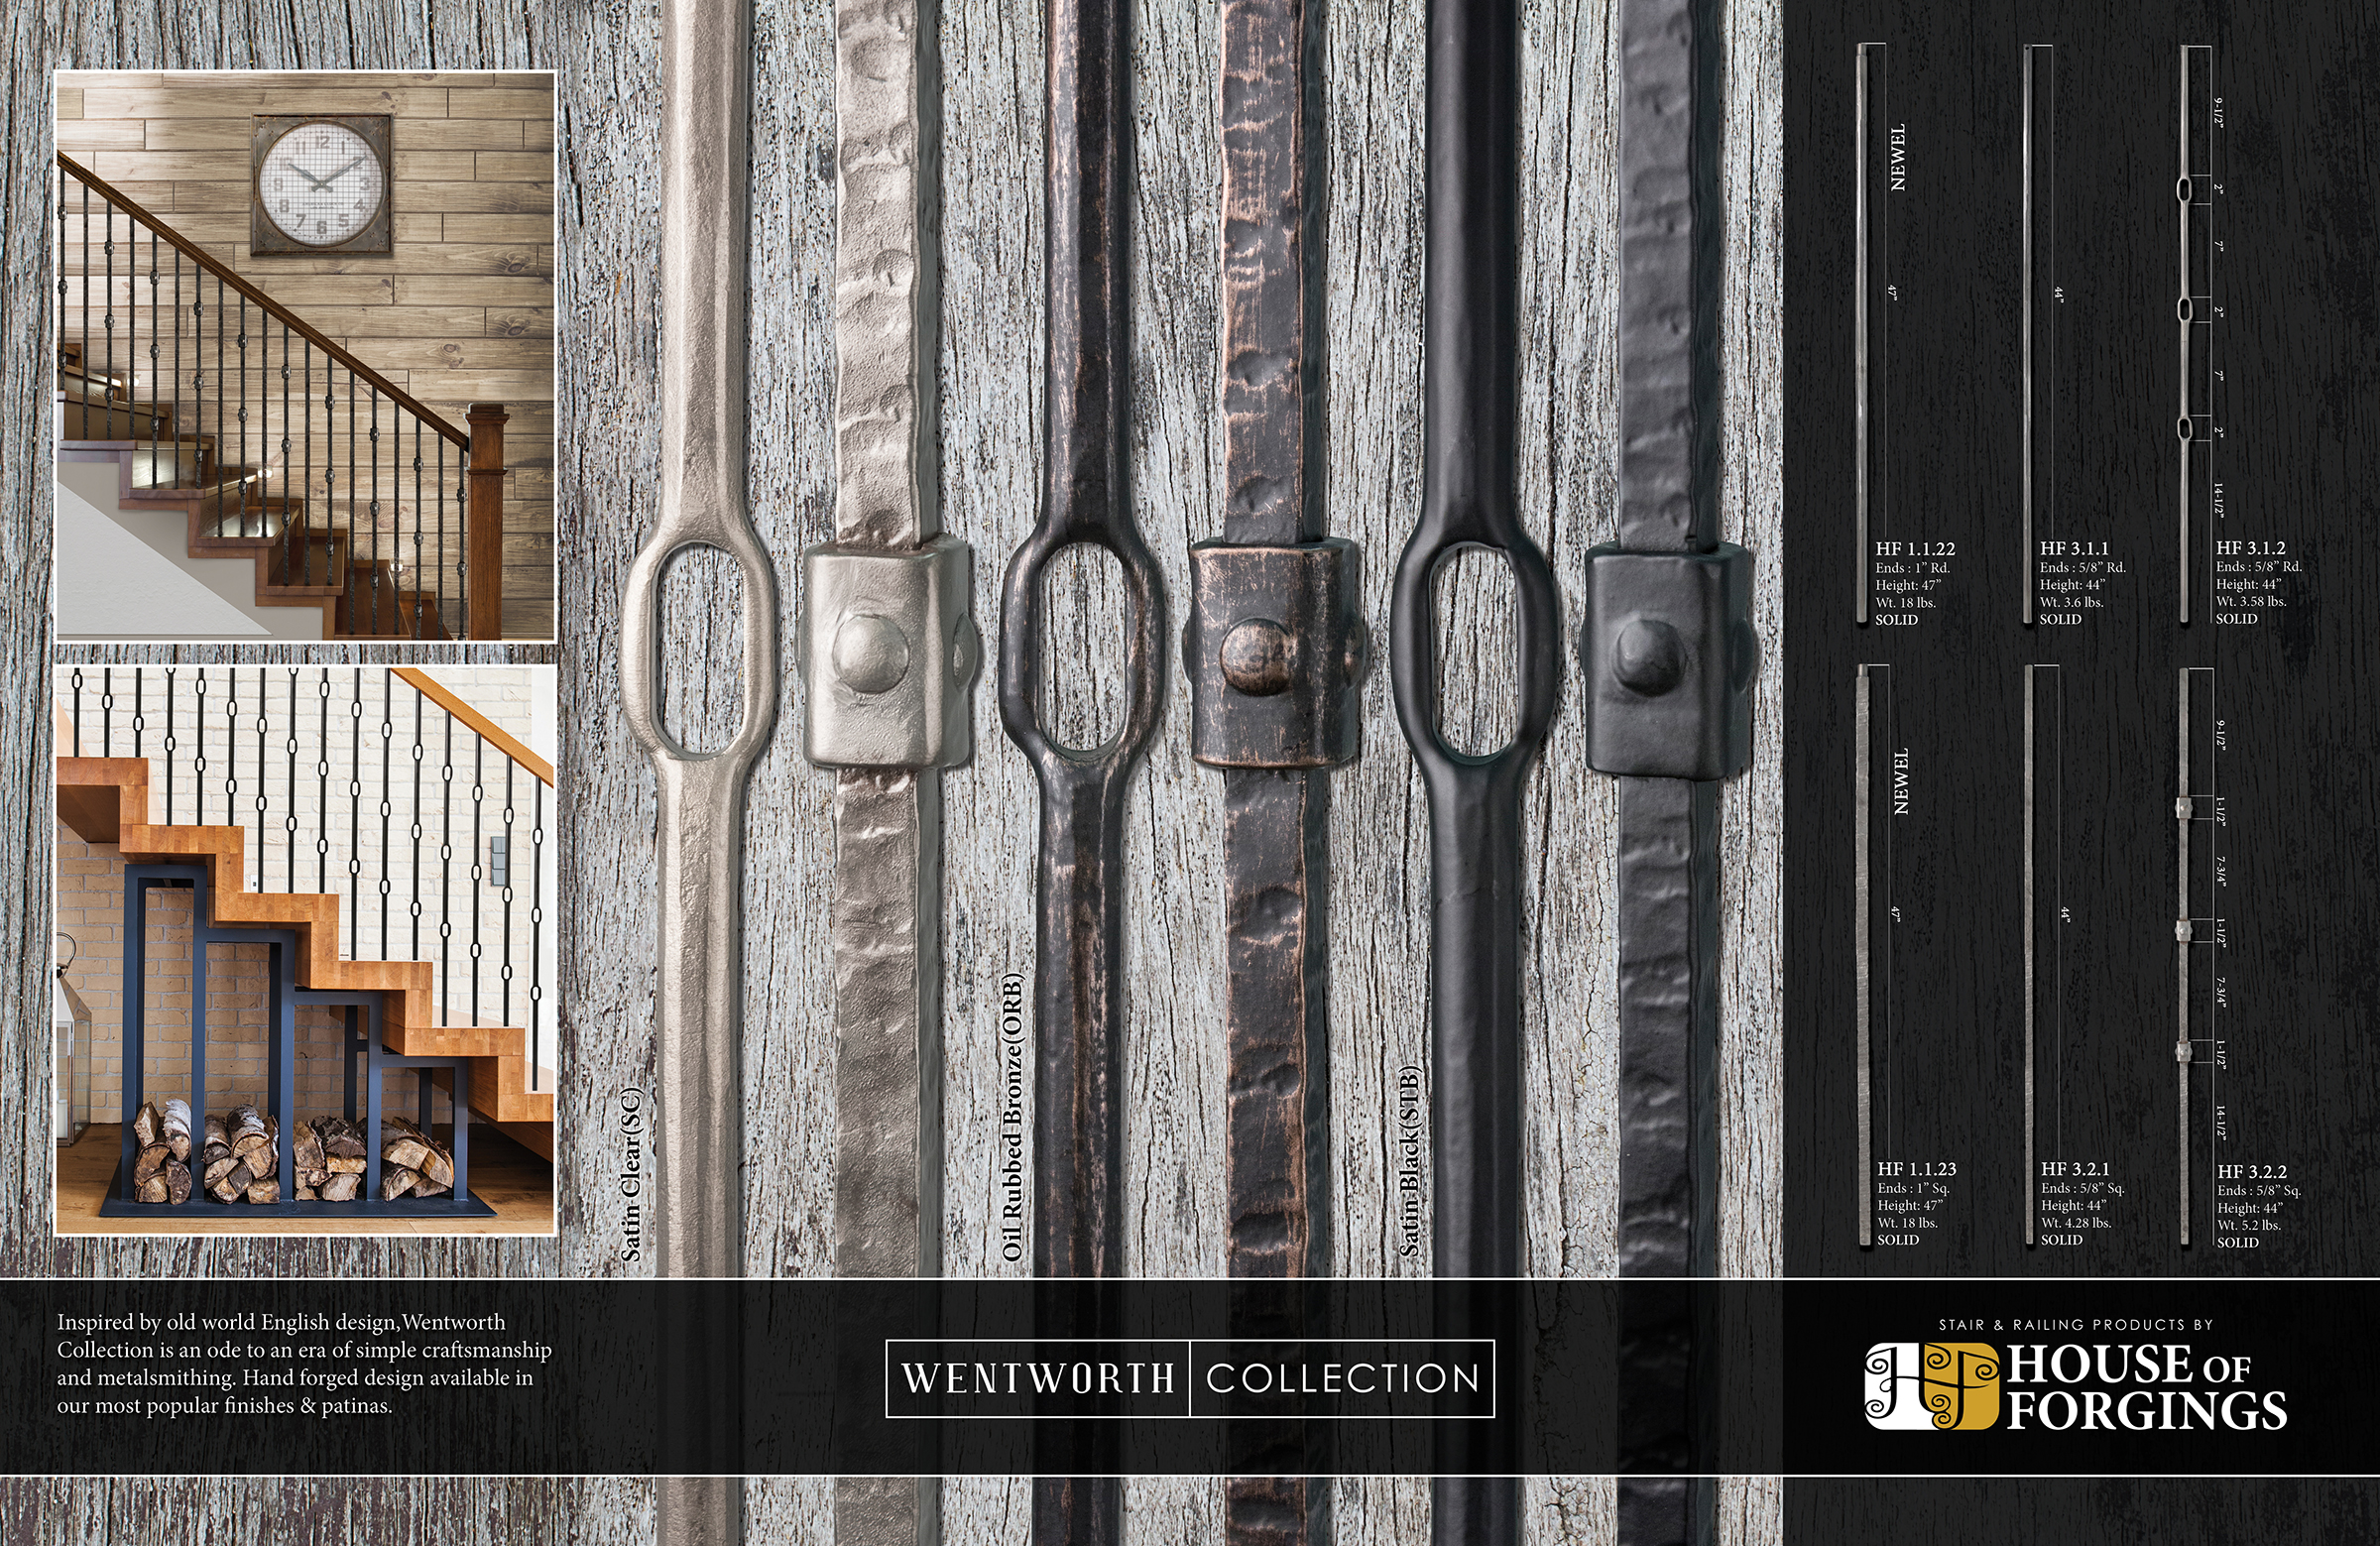 Introducing Wentworth Collection